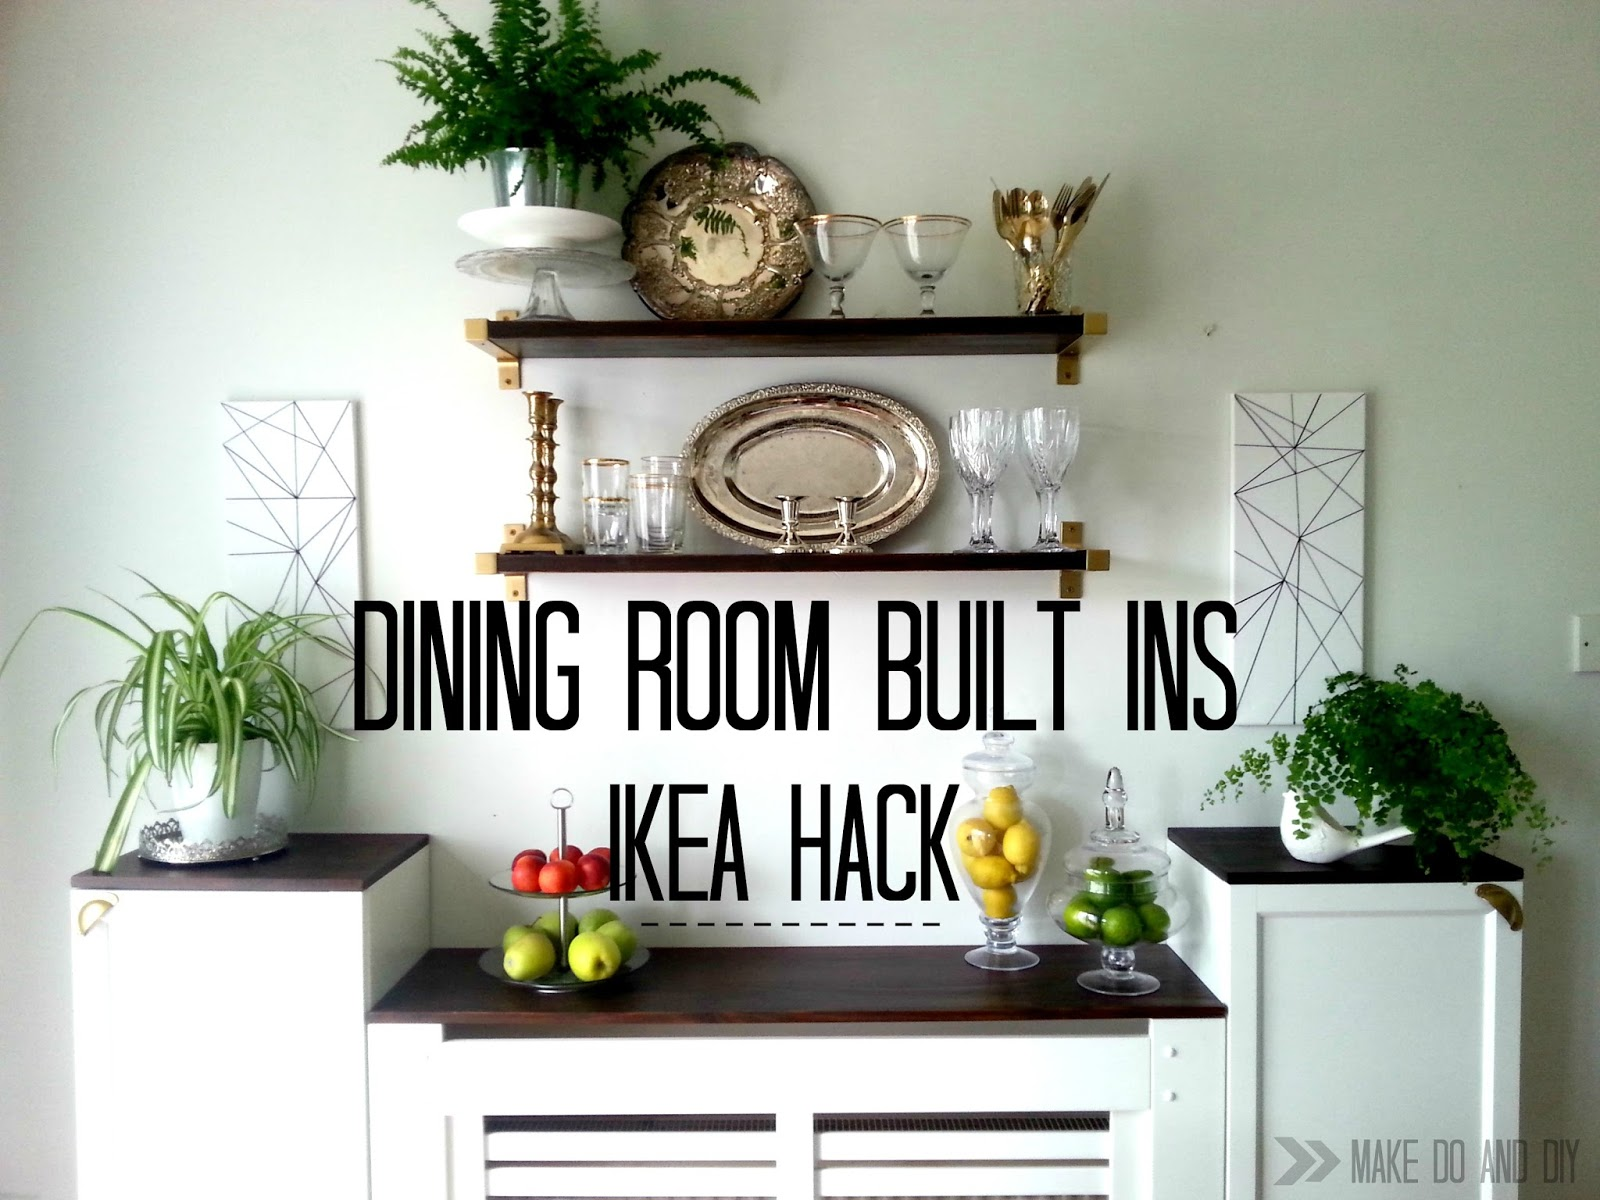 Ikea Hack Dining Room Buit In Storage From Billy Bookcases And Ekby Shelve